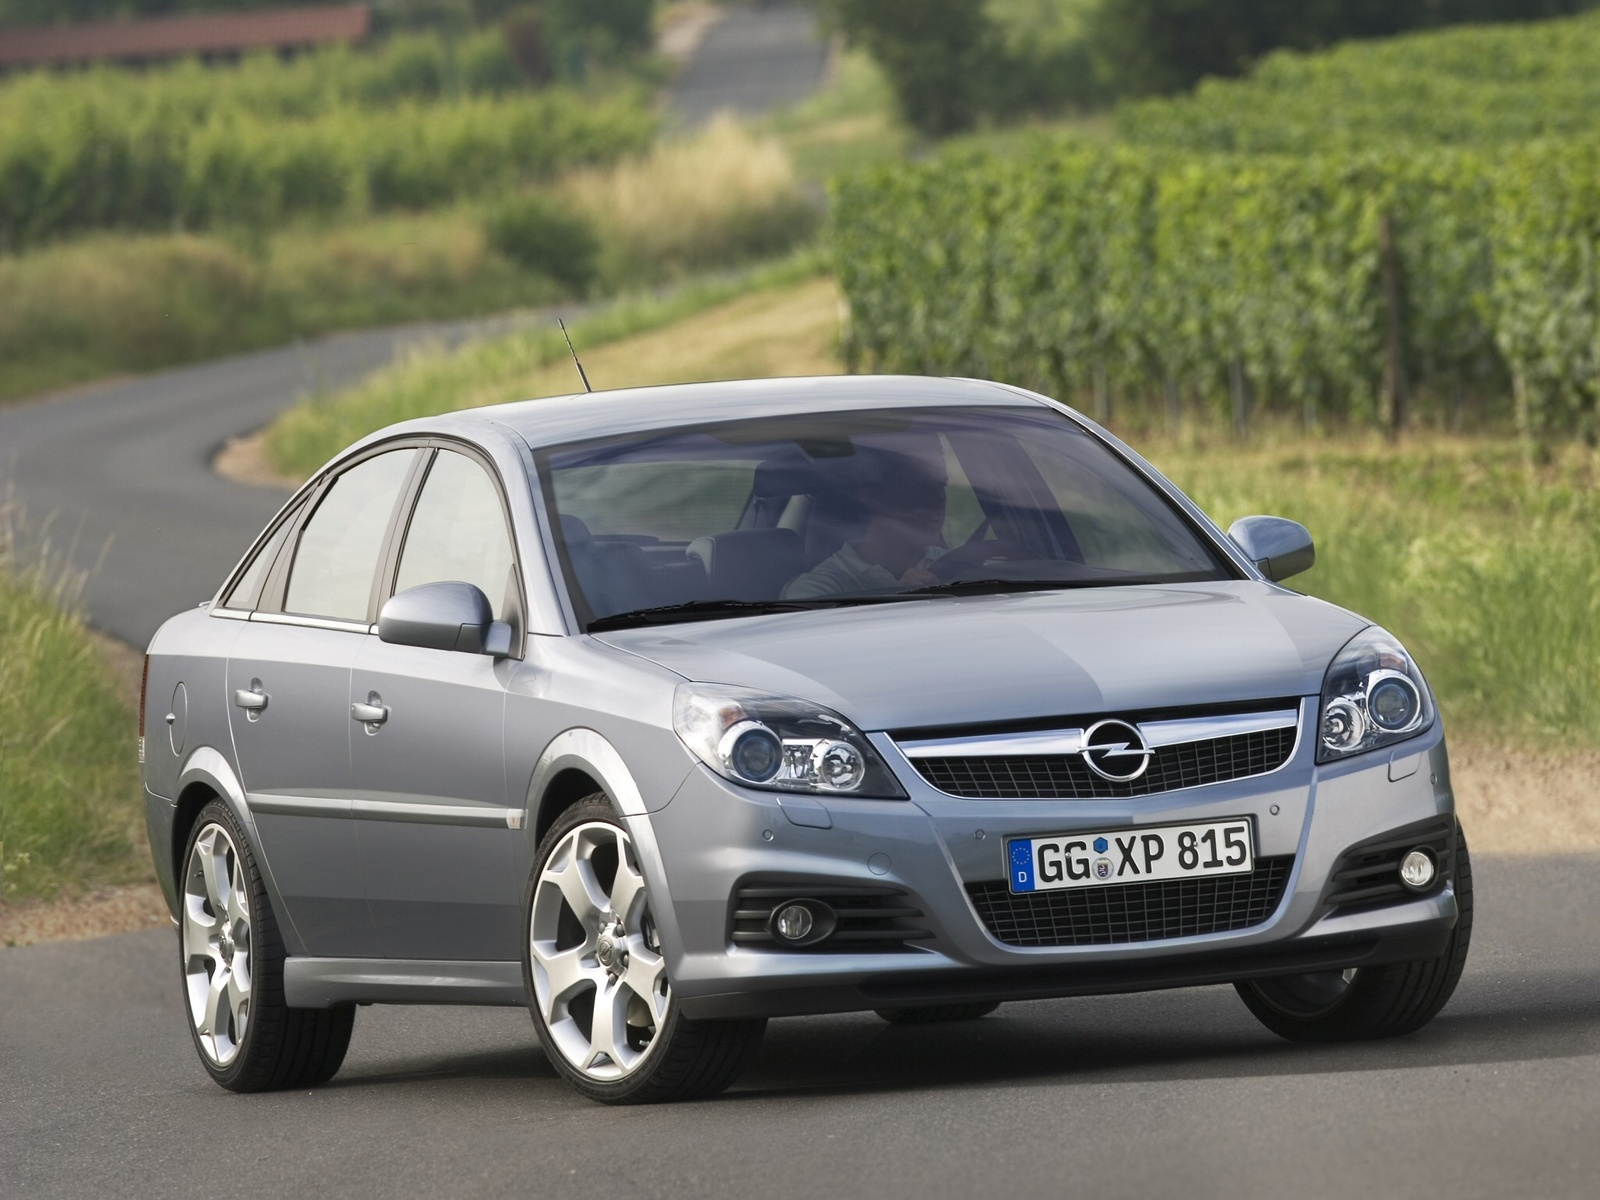 2005 Opel Vectra Overview Cargurus Vauxhall Cars